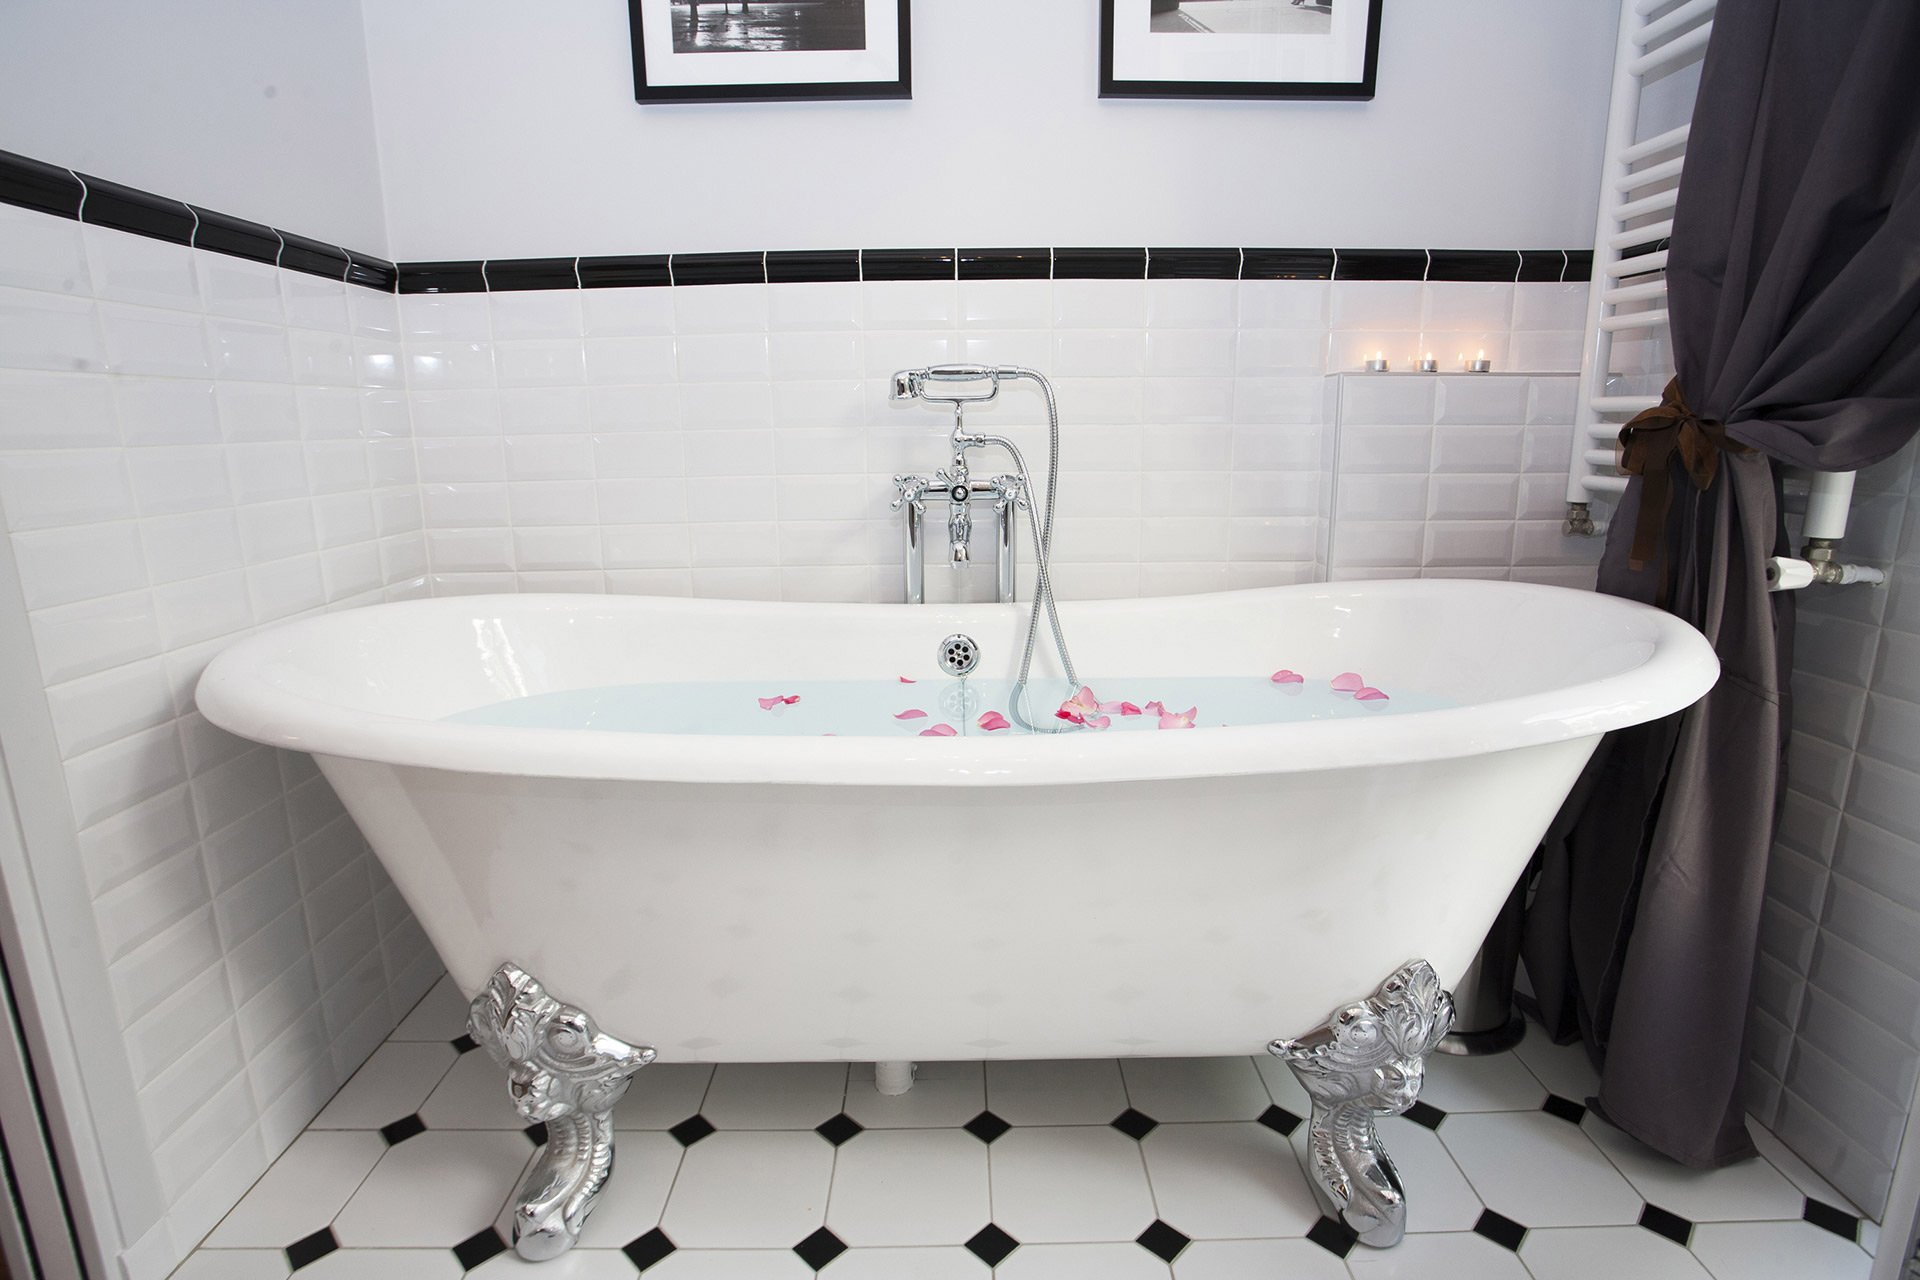 Beautiful claw-footed bathtub in the en suite bathroom